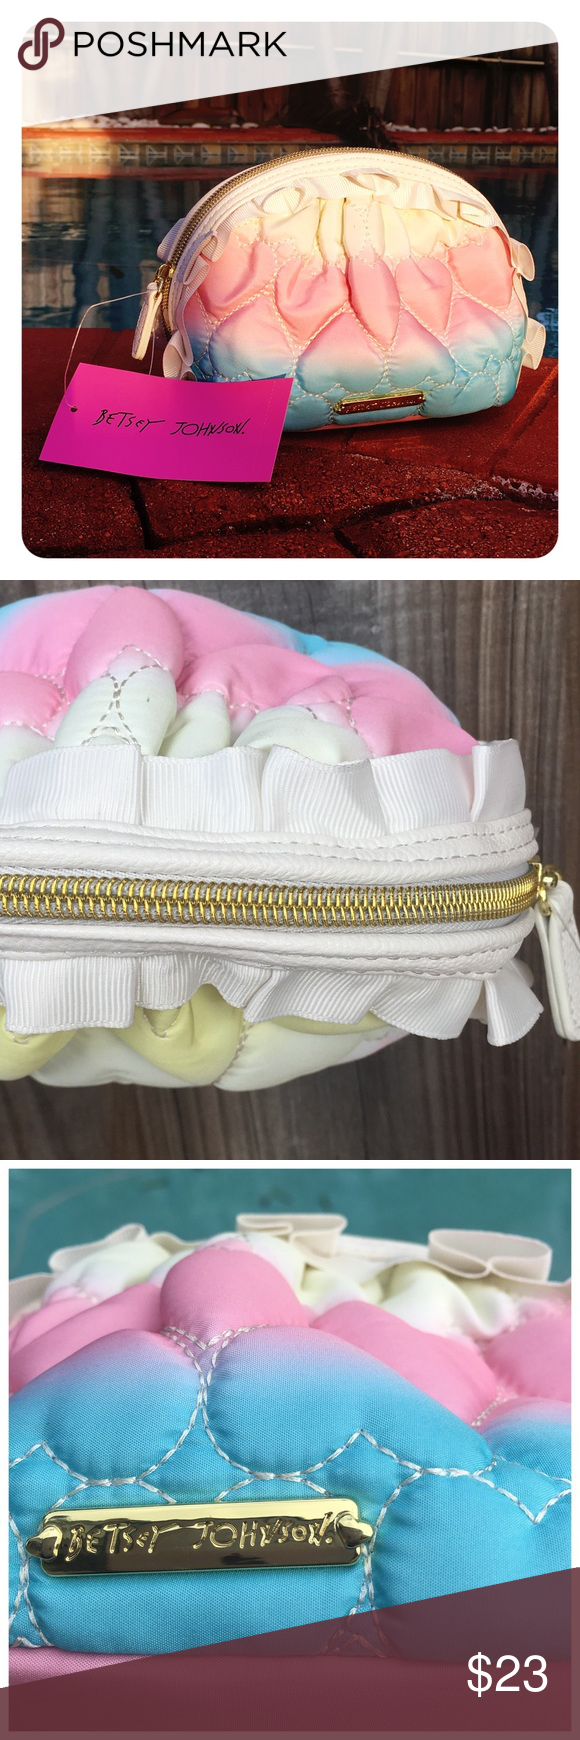 Betsey Johnson Cosmetic Bag In Rainbow Ruffles Brand New With Tags Attached Mini Ruffle Color Size 5 H X 8 L